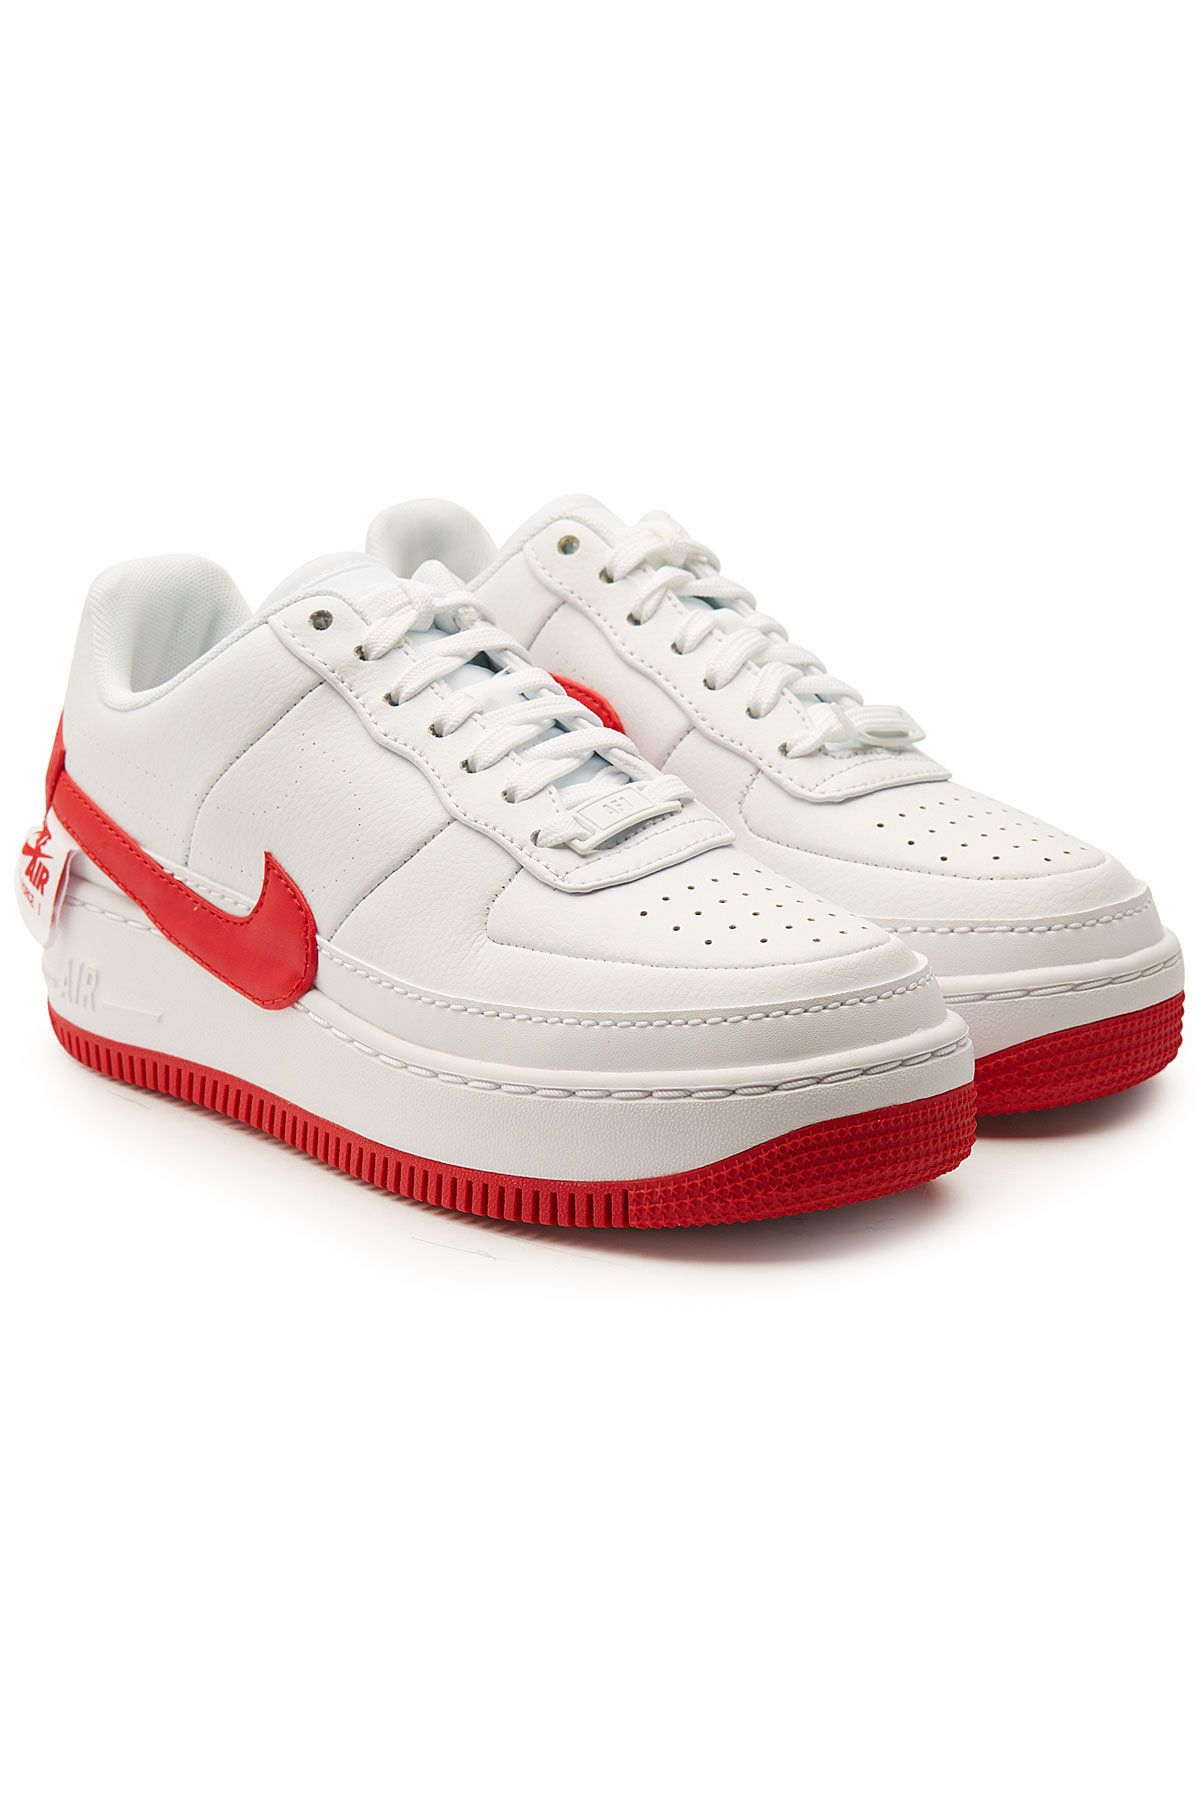 quality design b939f b7ef0 Nike - Air Force 1 Jester XX Leather Sneakers on STYLEBOP.com